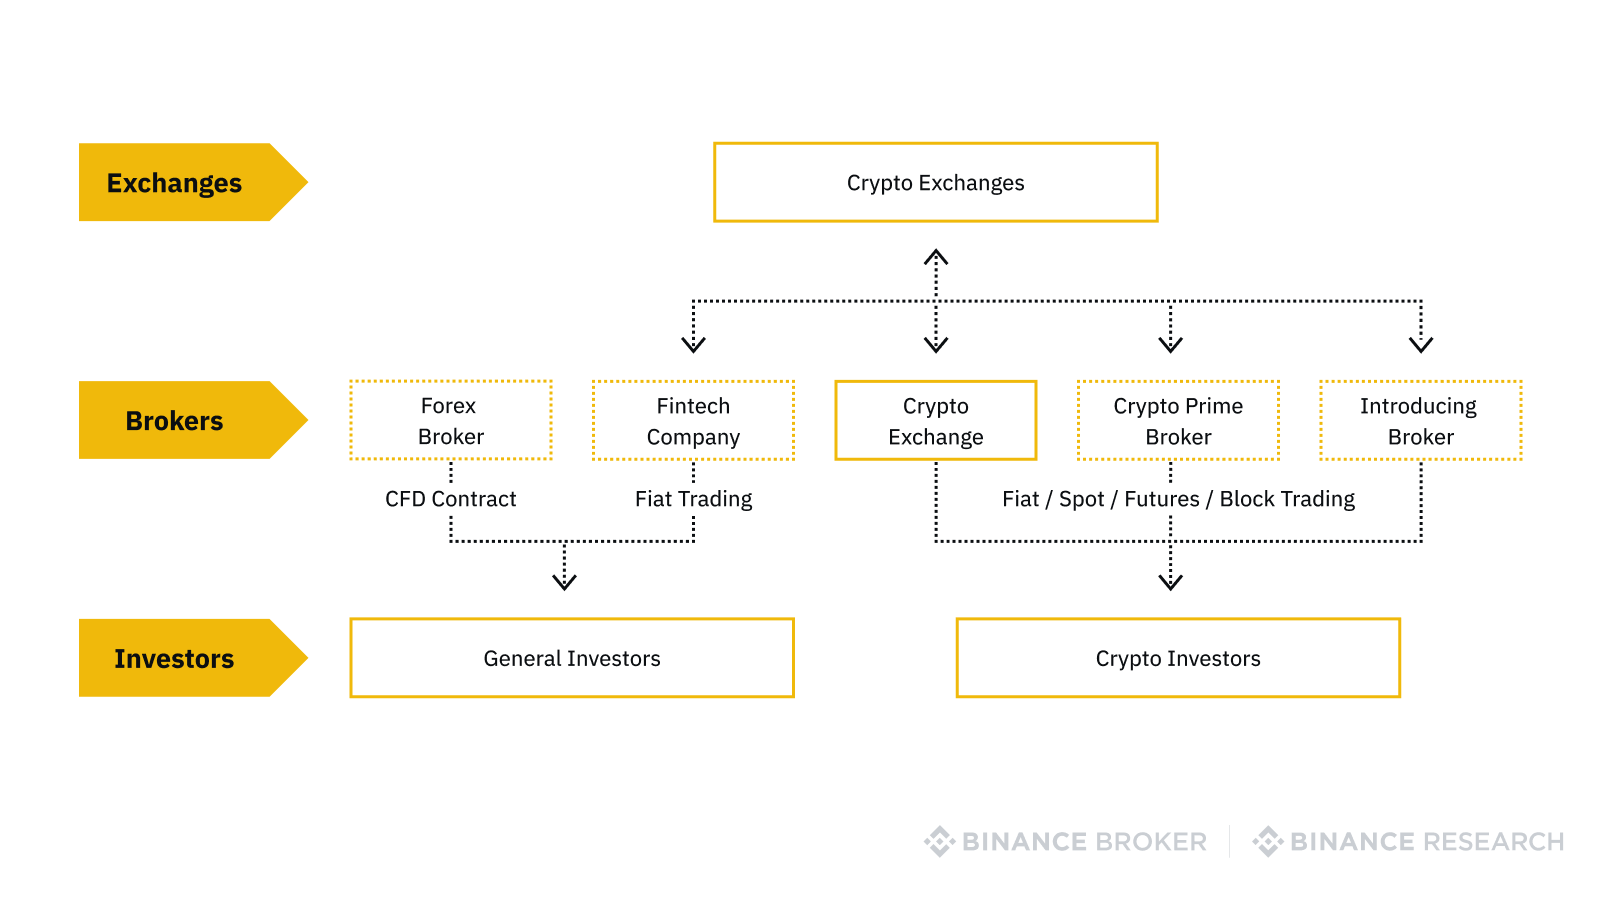 Organization between crypto exchanges, brokers, and investors